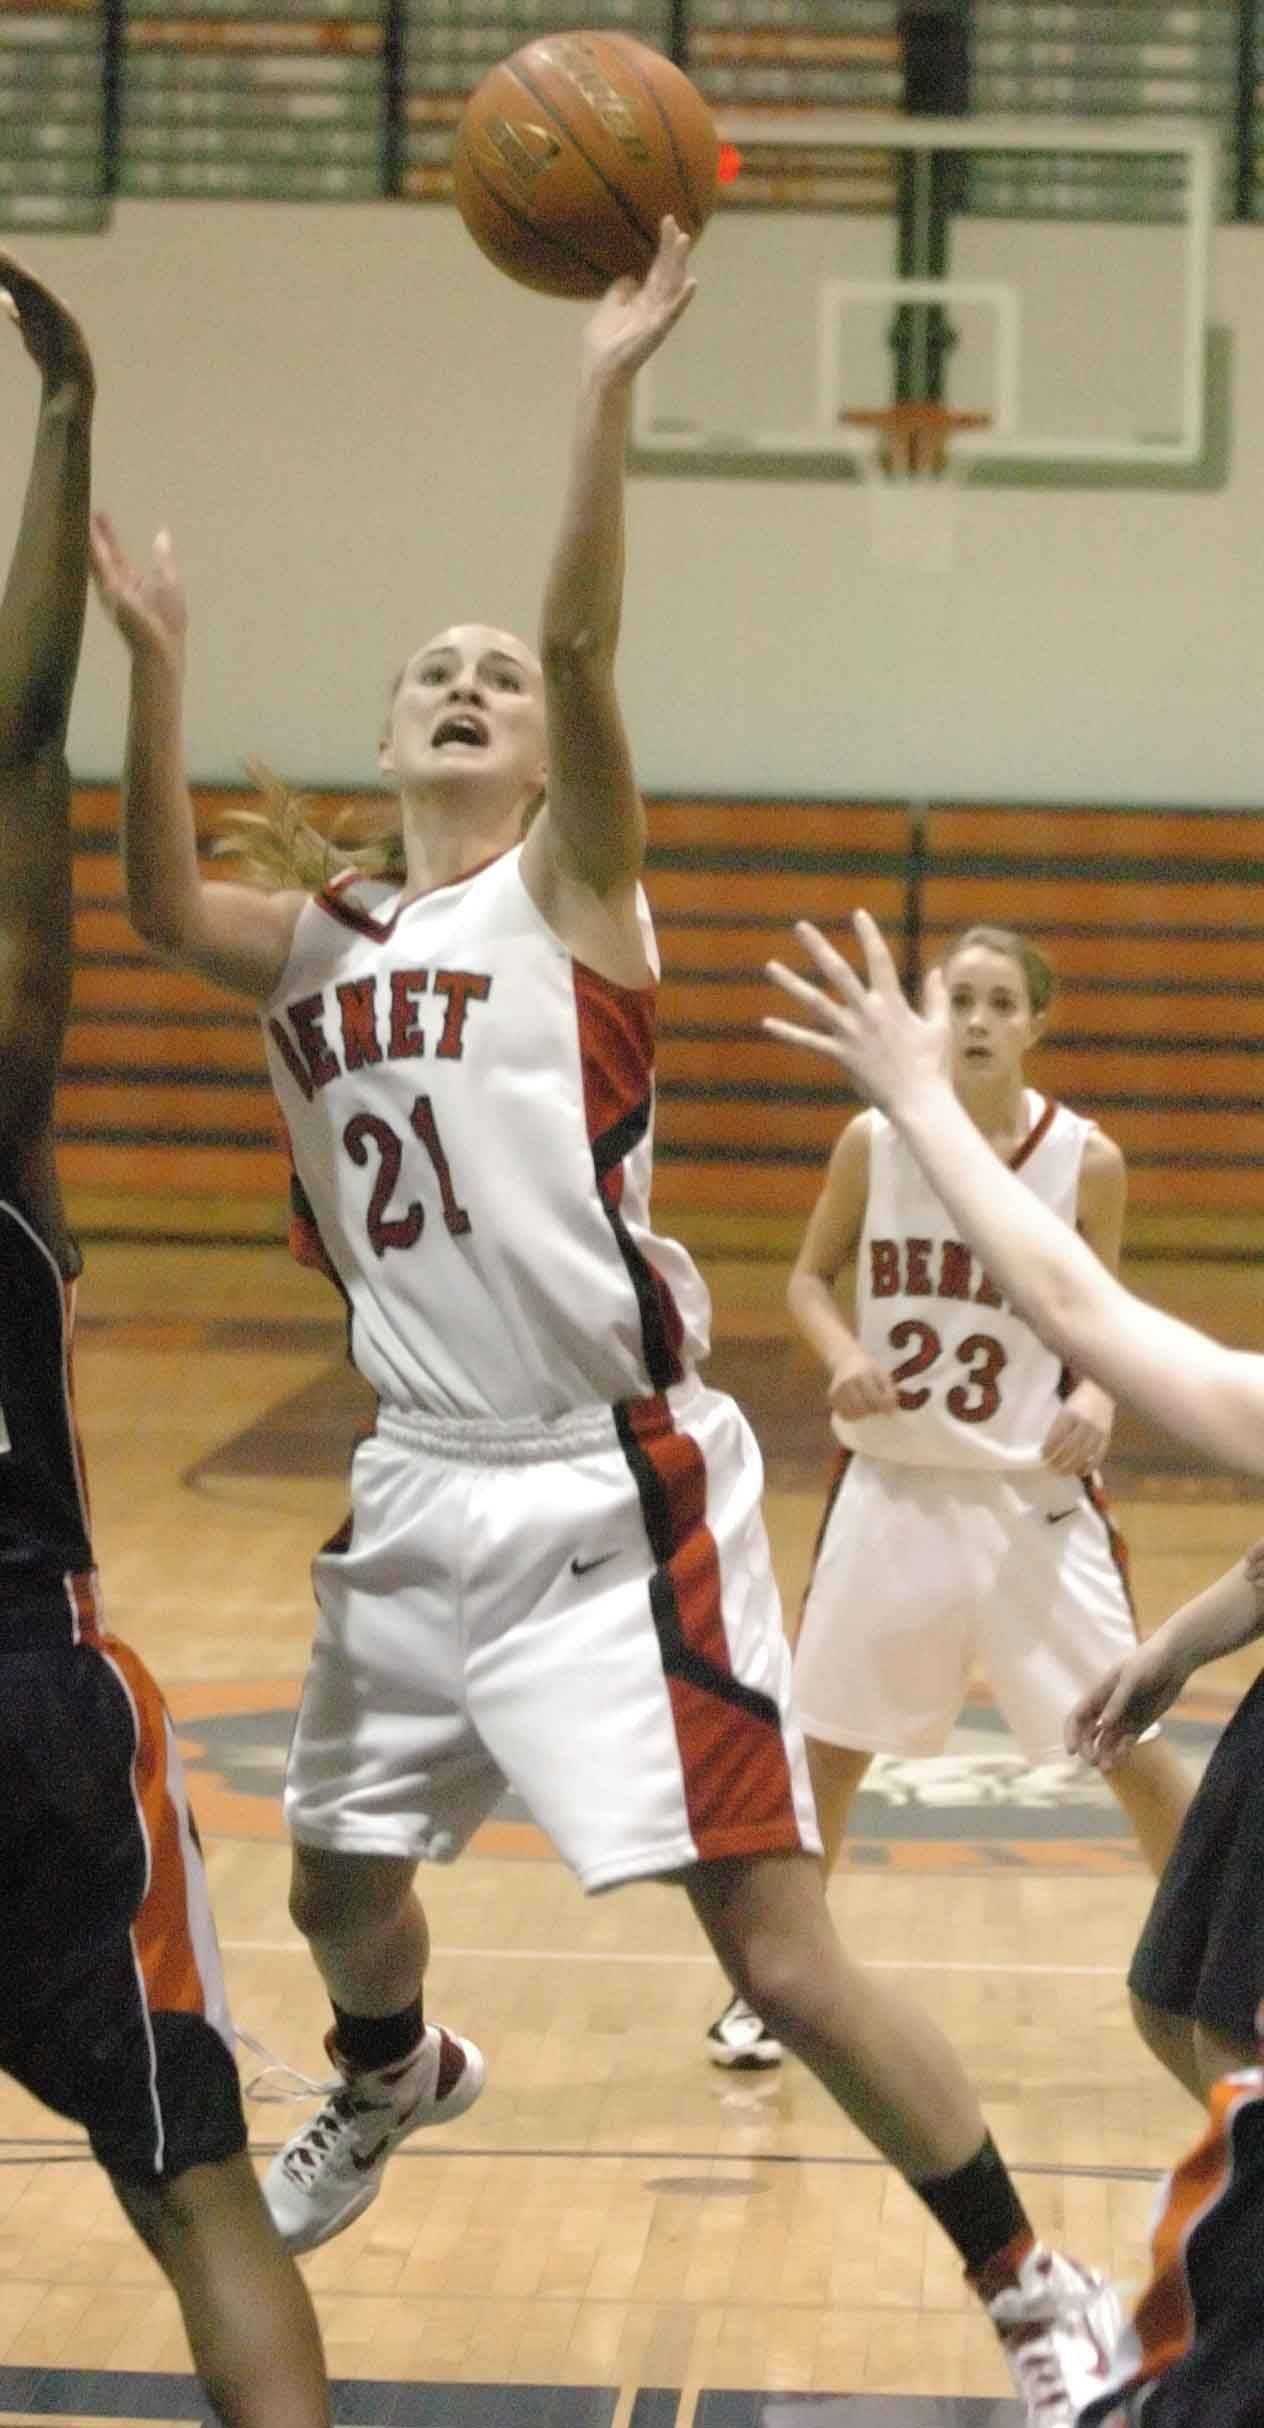 Sidney Prasse of Benet puts up a shot against Naperville North.